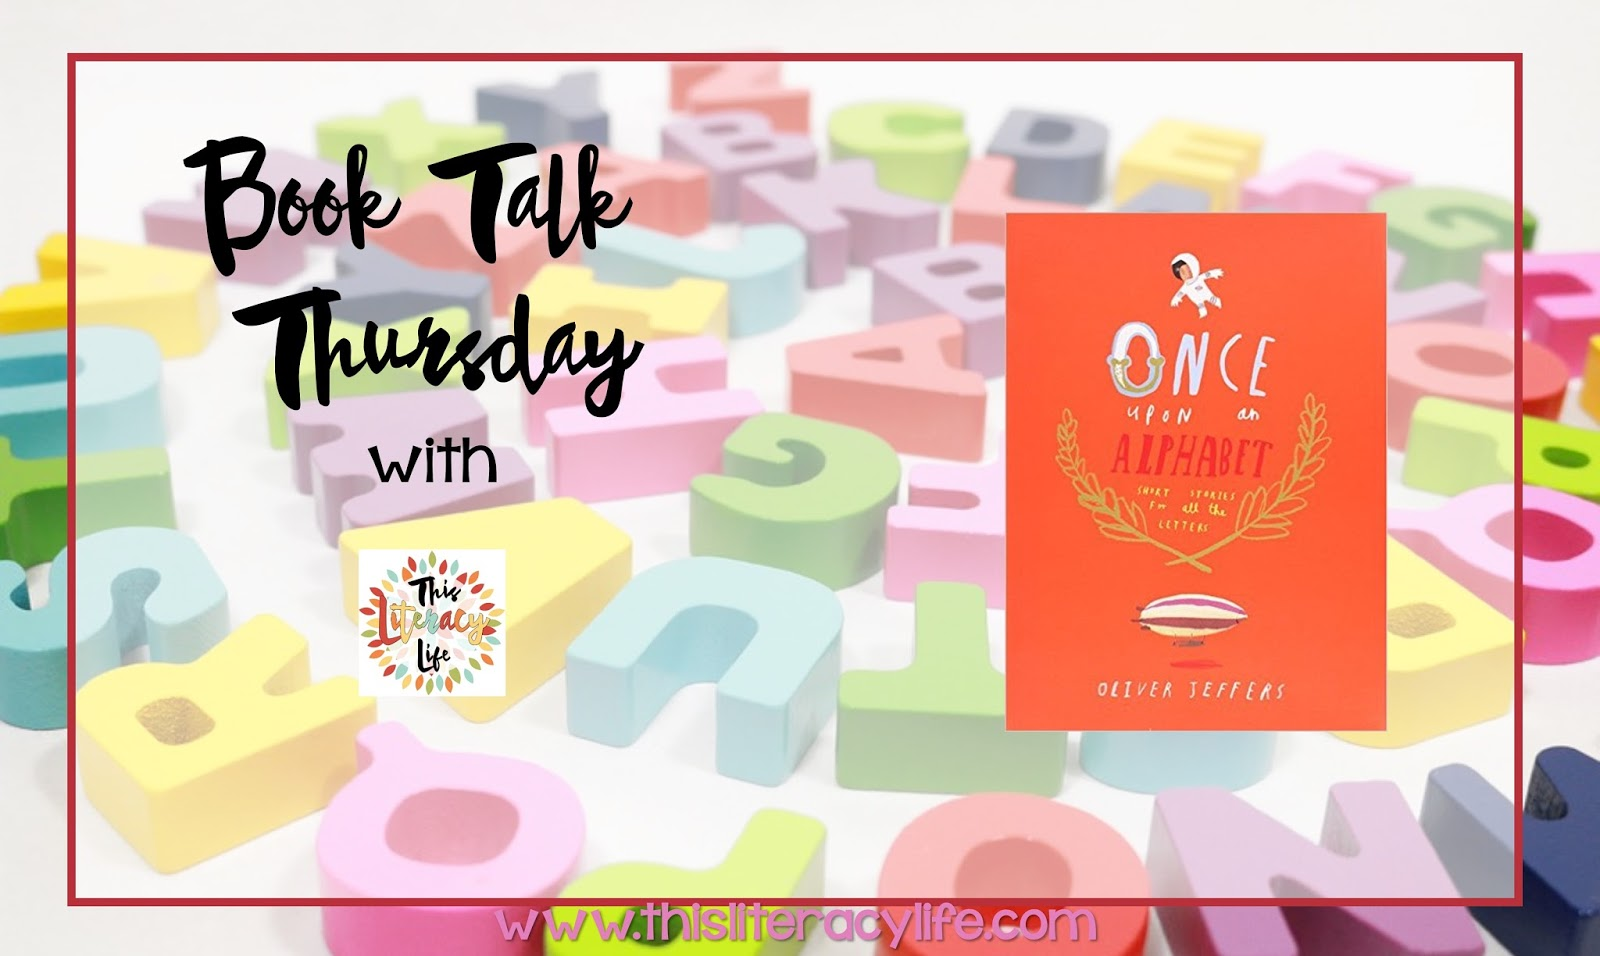 Once Upon an Alphabet is a perfect book for helping students read, connect, and write their own shorts stories using the letters of the alphabet.